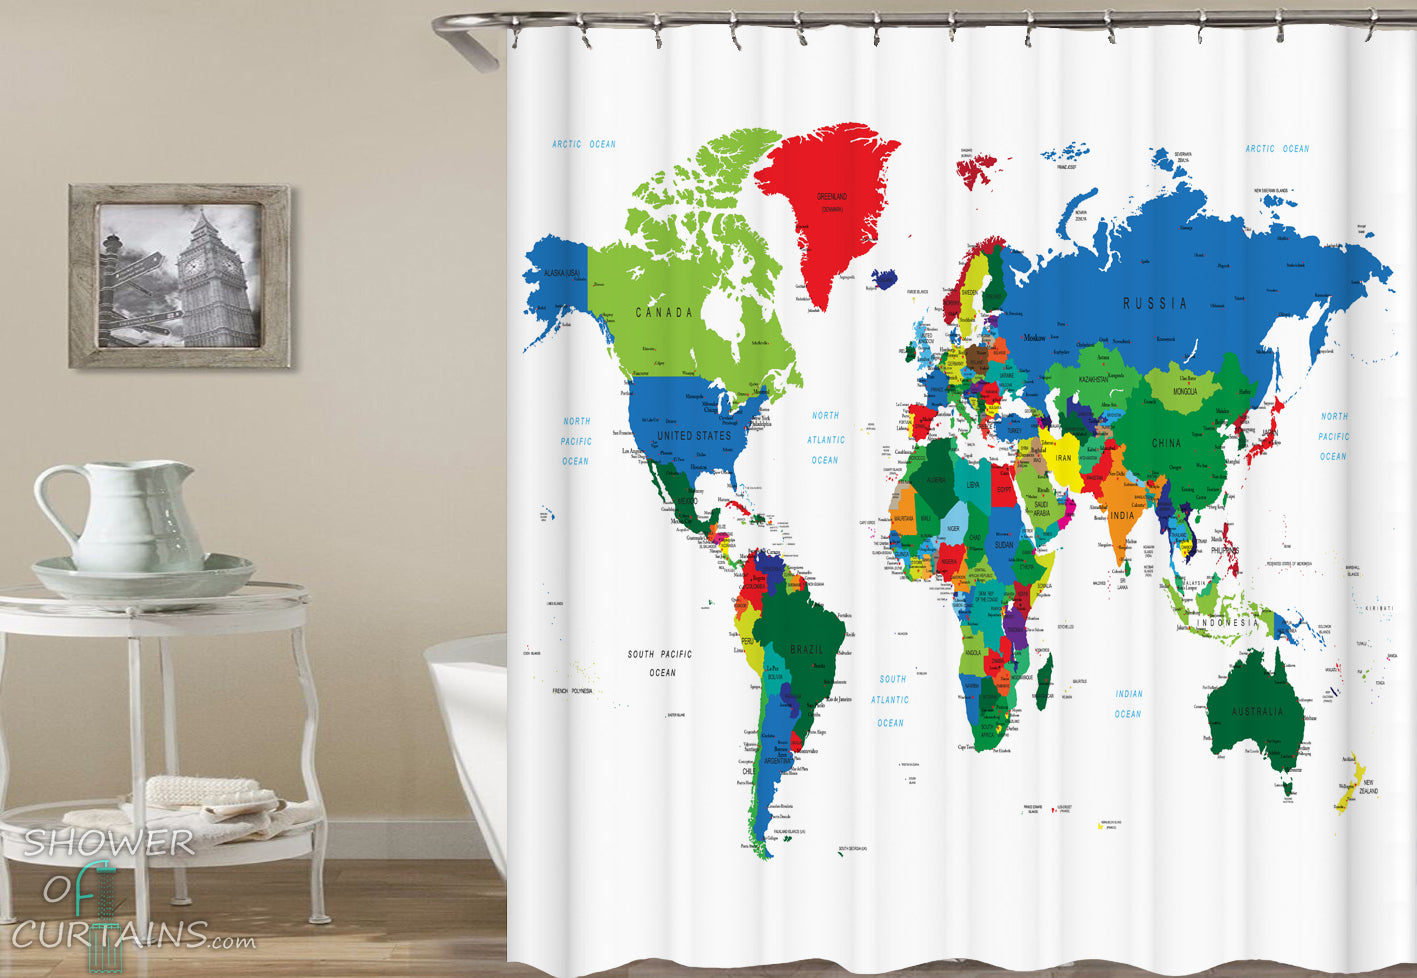 Shower curtains multi colored world map shower of curtains multi colored world map shower curtain gumiabroncs Gallery